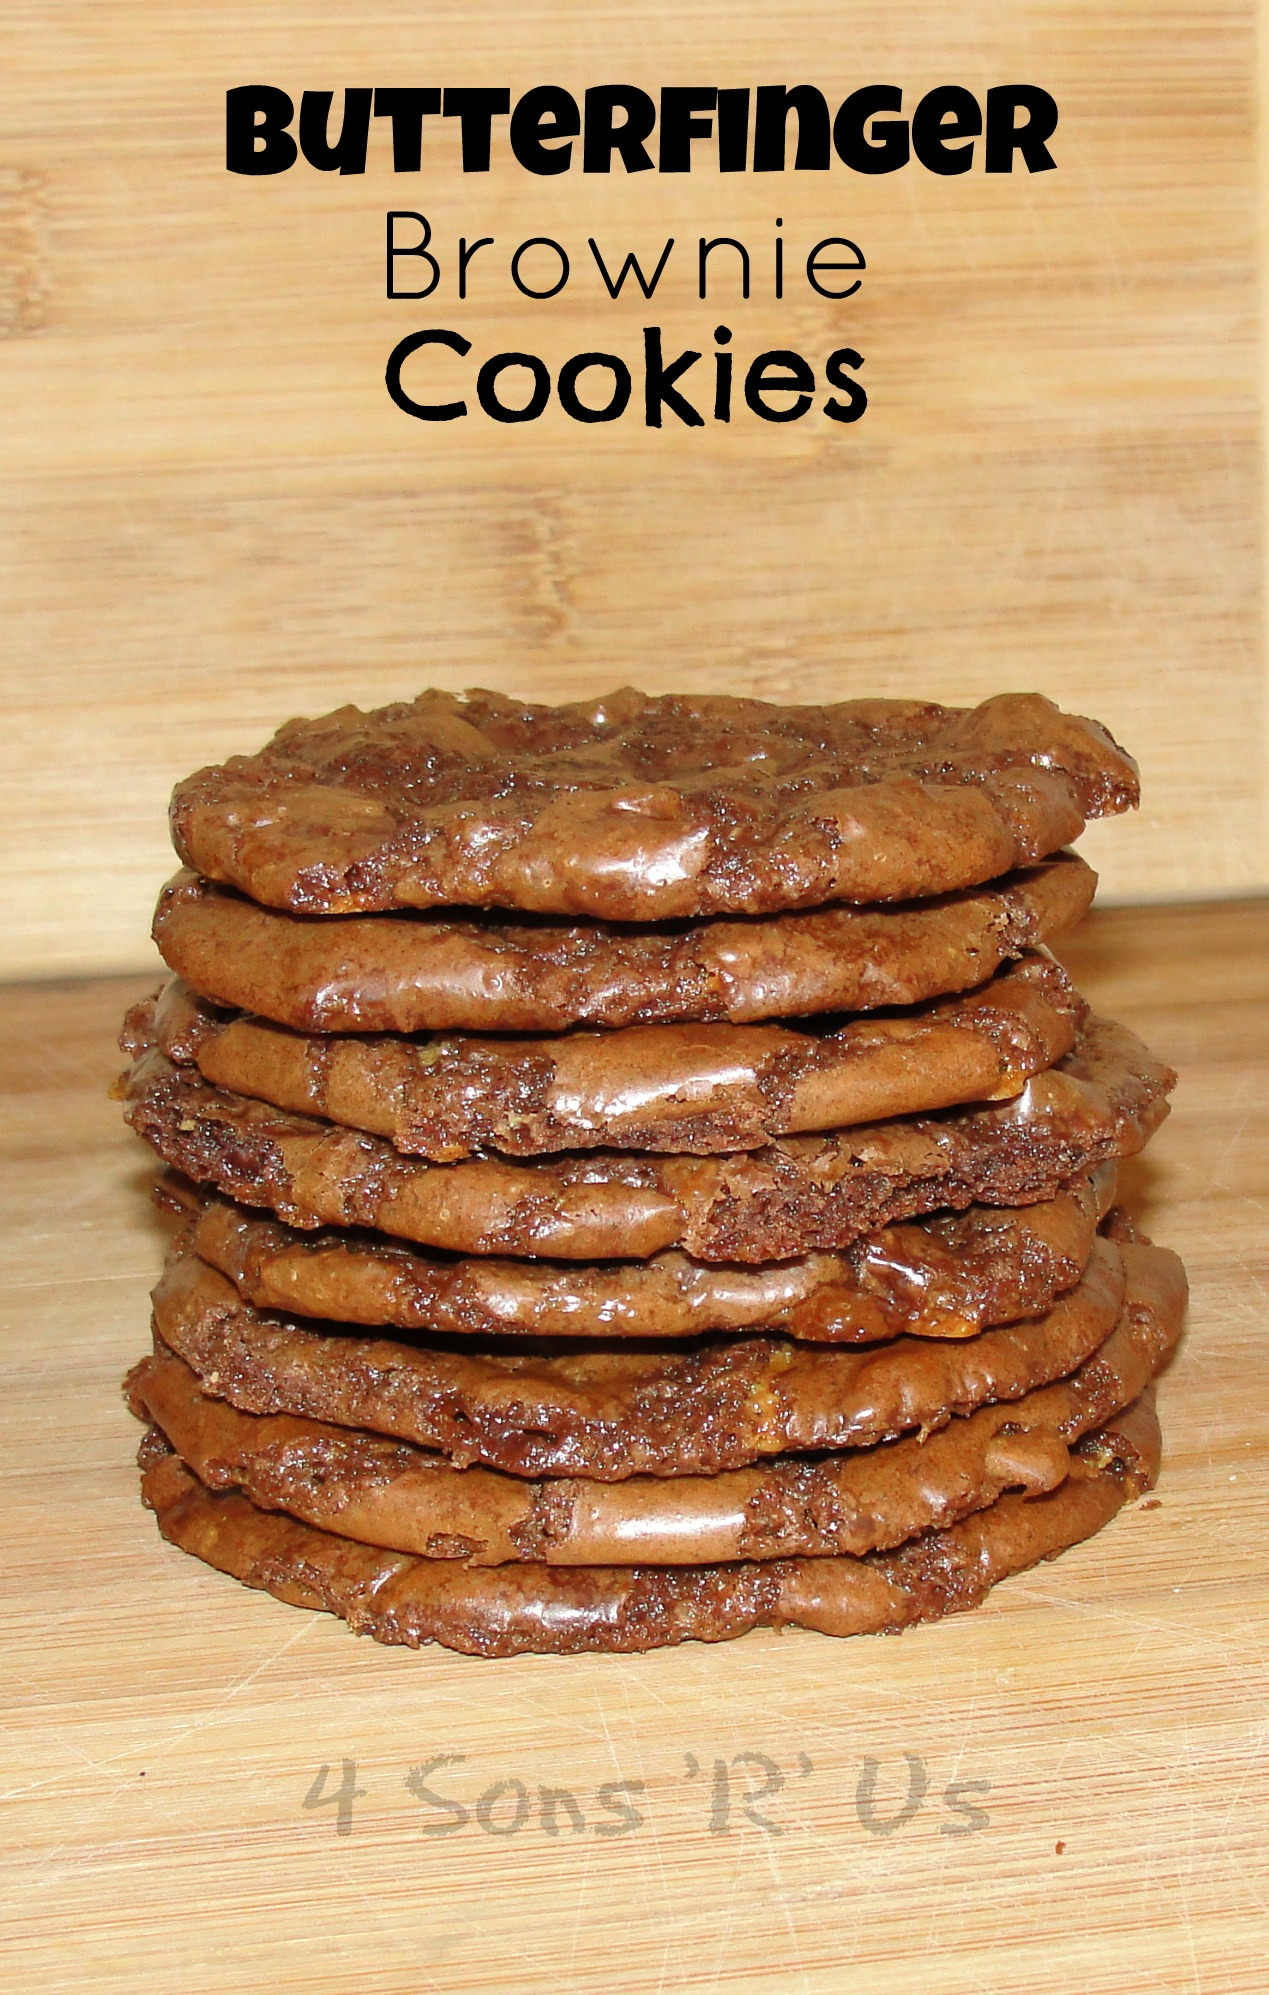 Butterfinger Brownie Cookies - 4 Sons 'R' Us